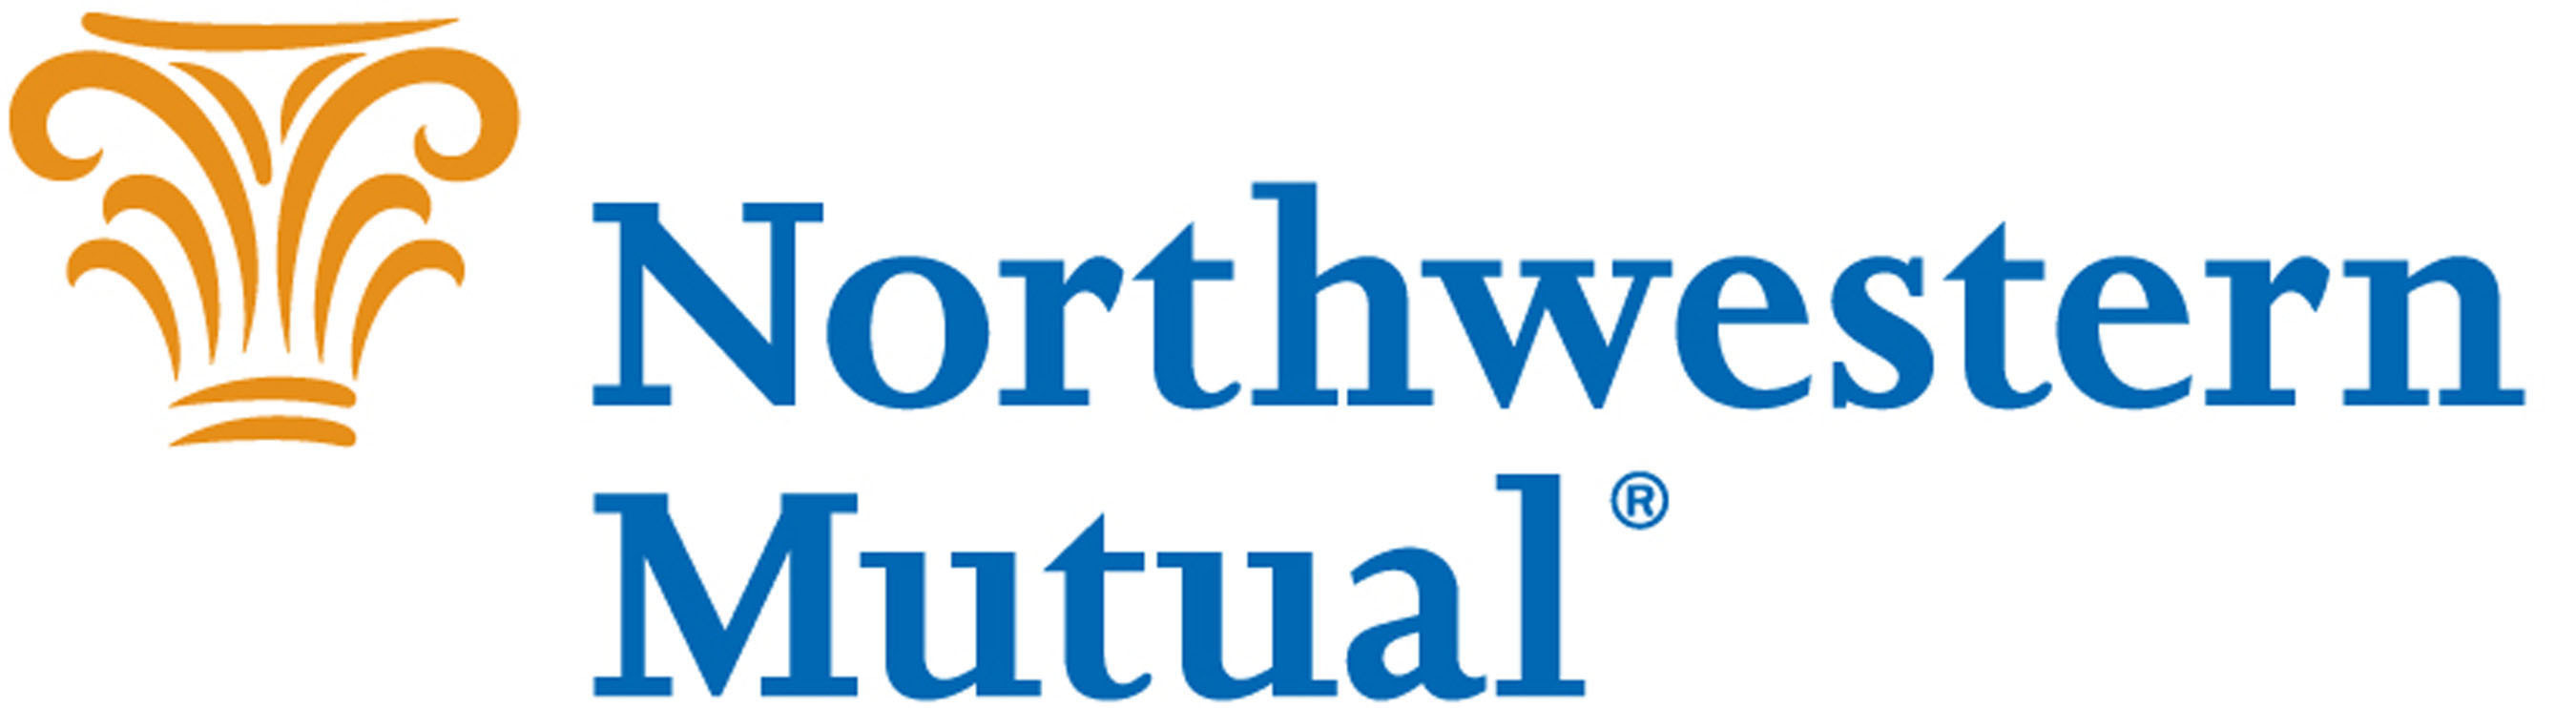 Term Life Insurance Best >> Northwestern Mutual 2013 Planning and Progress Study Available Now - Insight Forums